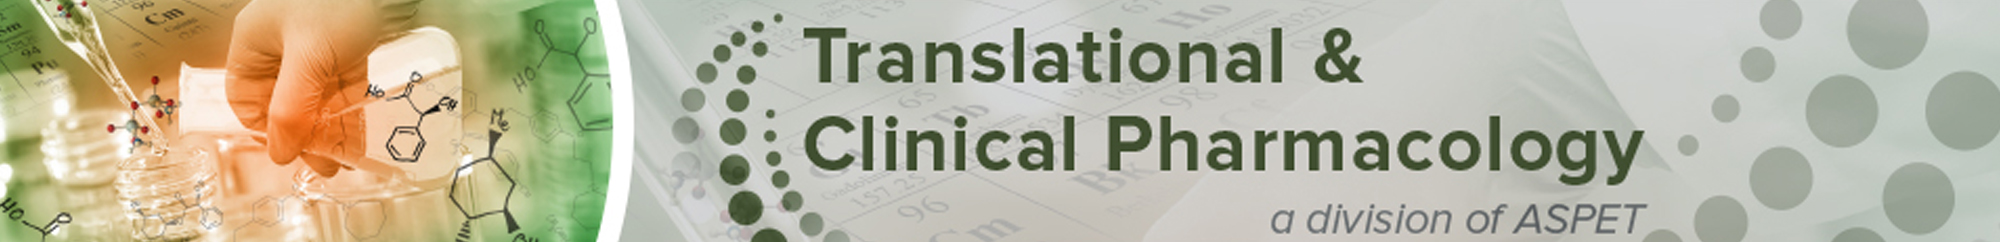 Translational and Clinical Pharmacology